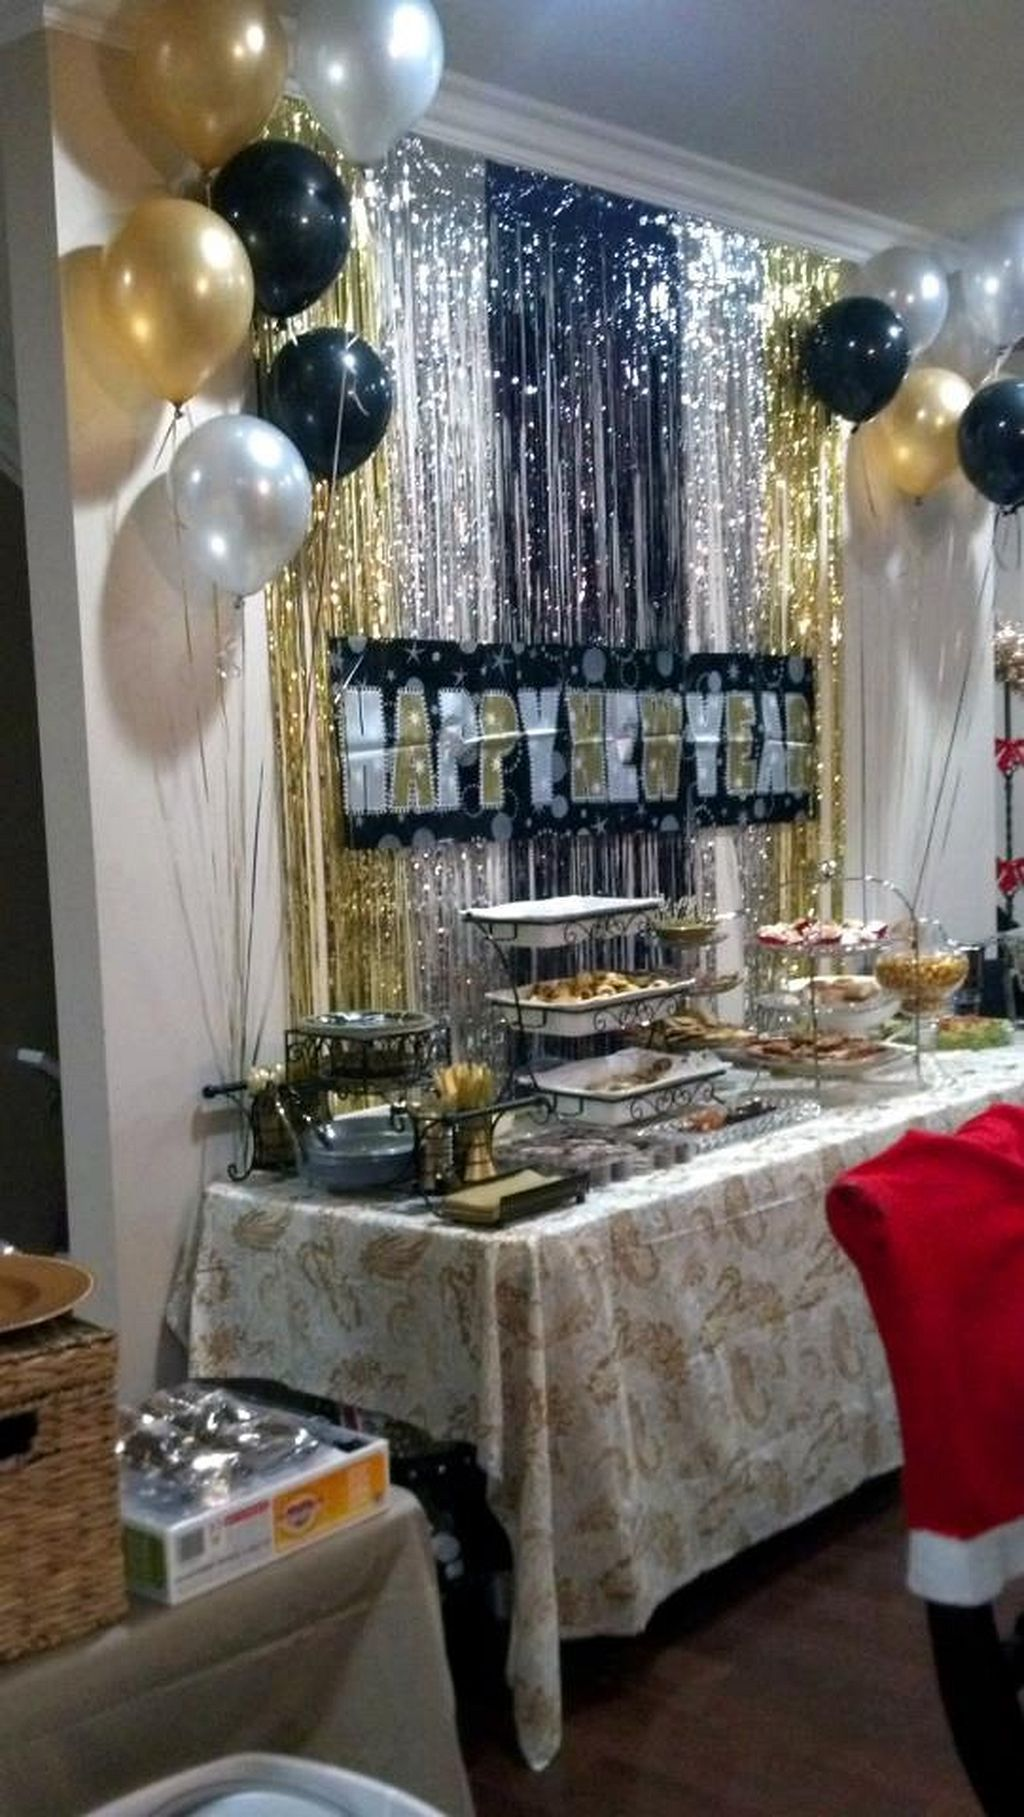 Gorgeous 44 Sparkling Diy Decoration Ideas For New Years Eve Party Https Homedecormagz Co New Years Eve Decorations New Years Decorations New Years Eve Party